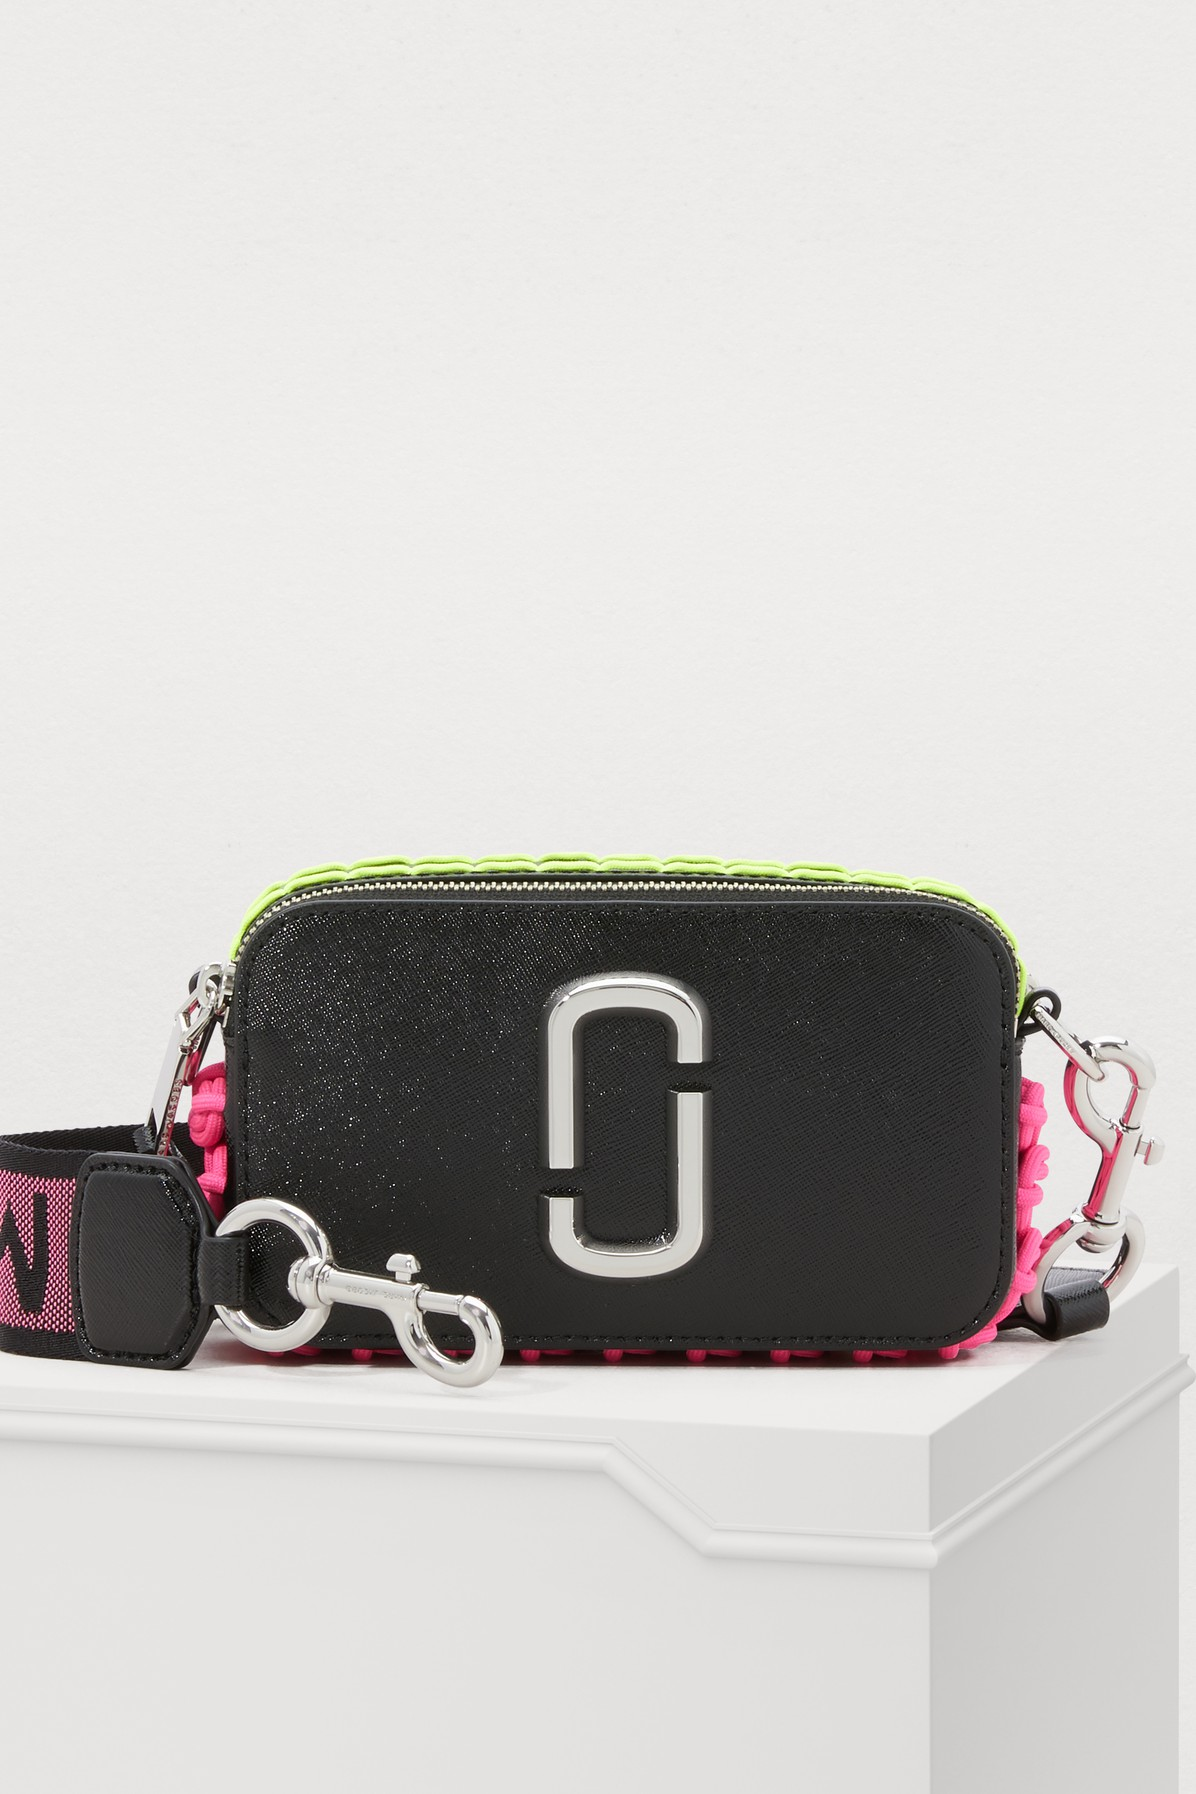 Snapshot Whipstitch Leather Camera Bag Crossbody in Black/Silver